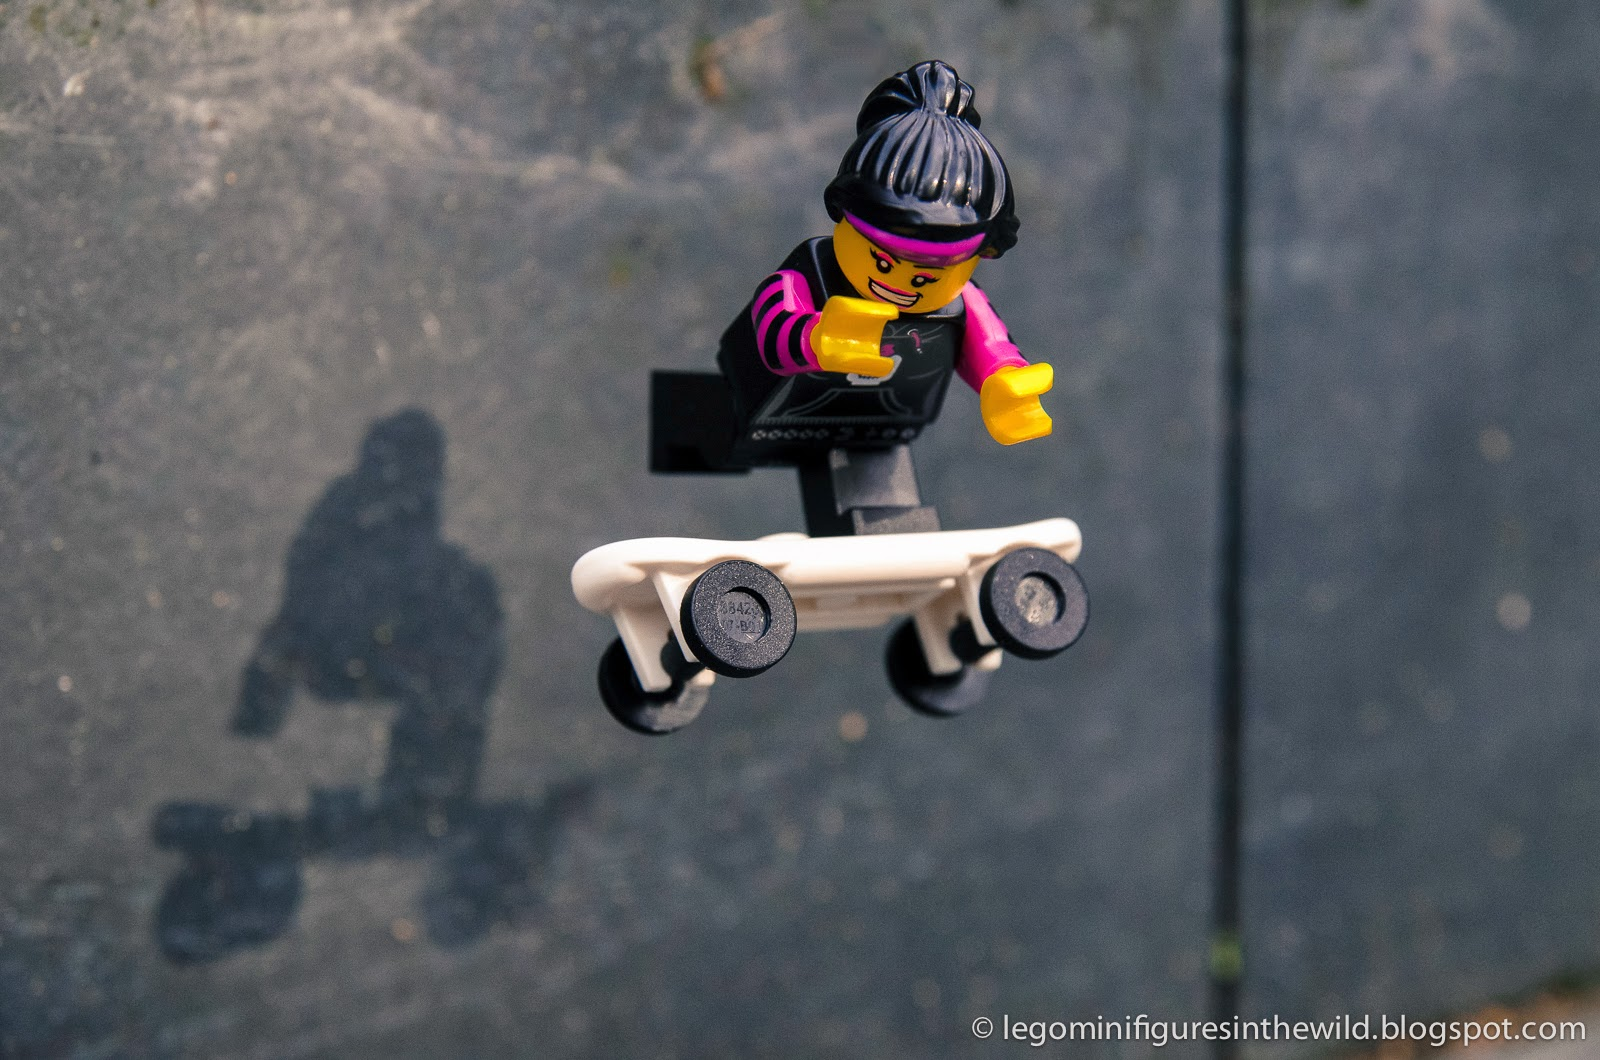 Lego Minifigure Series 6 Skater Girl - Wallpaper